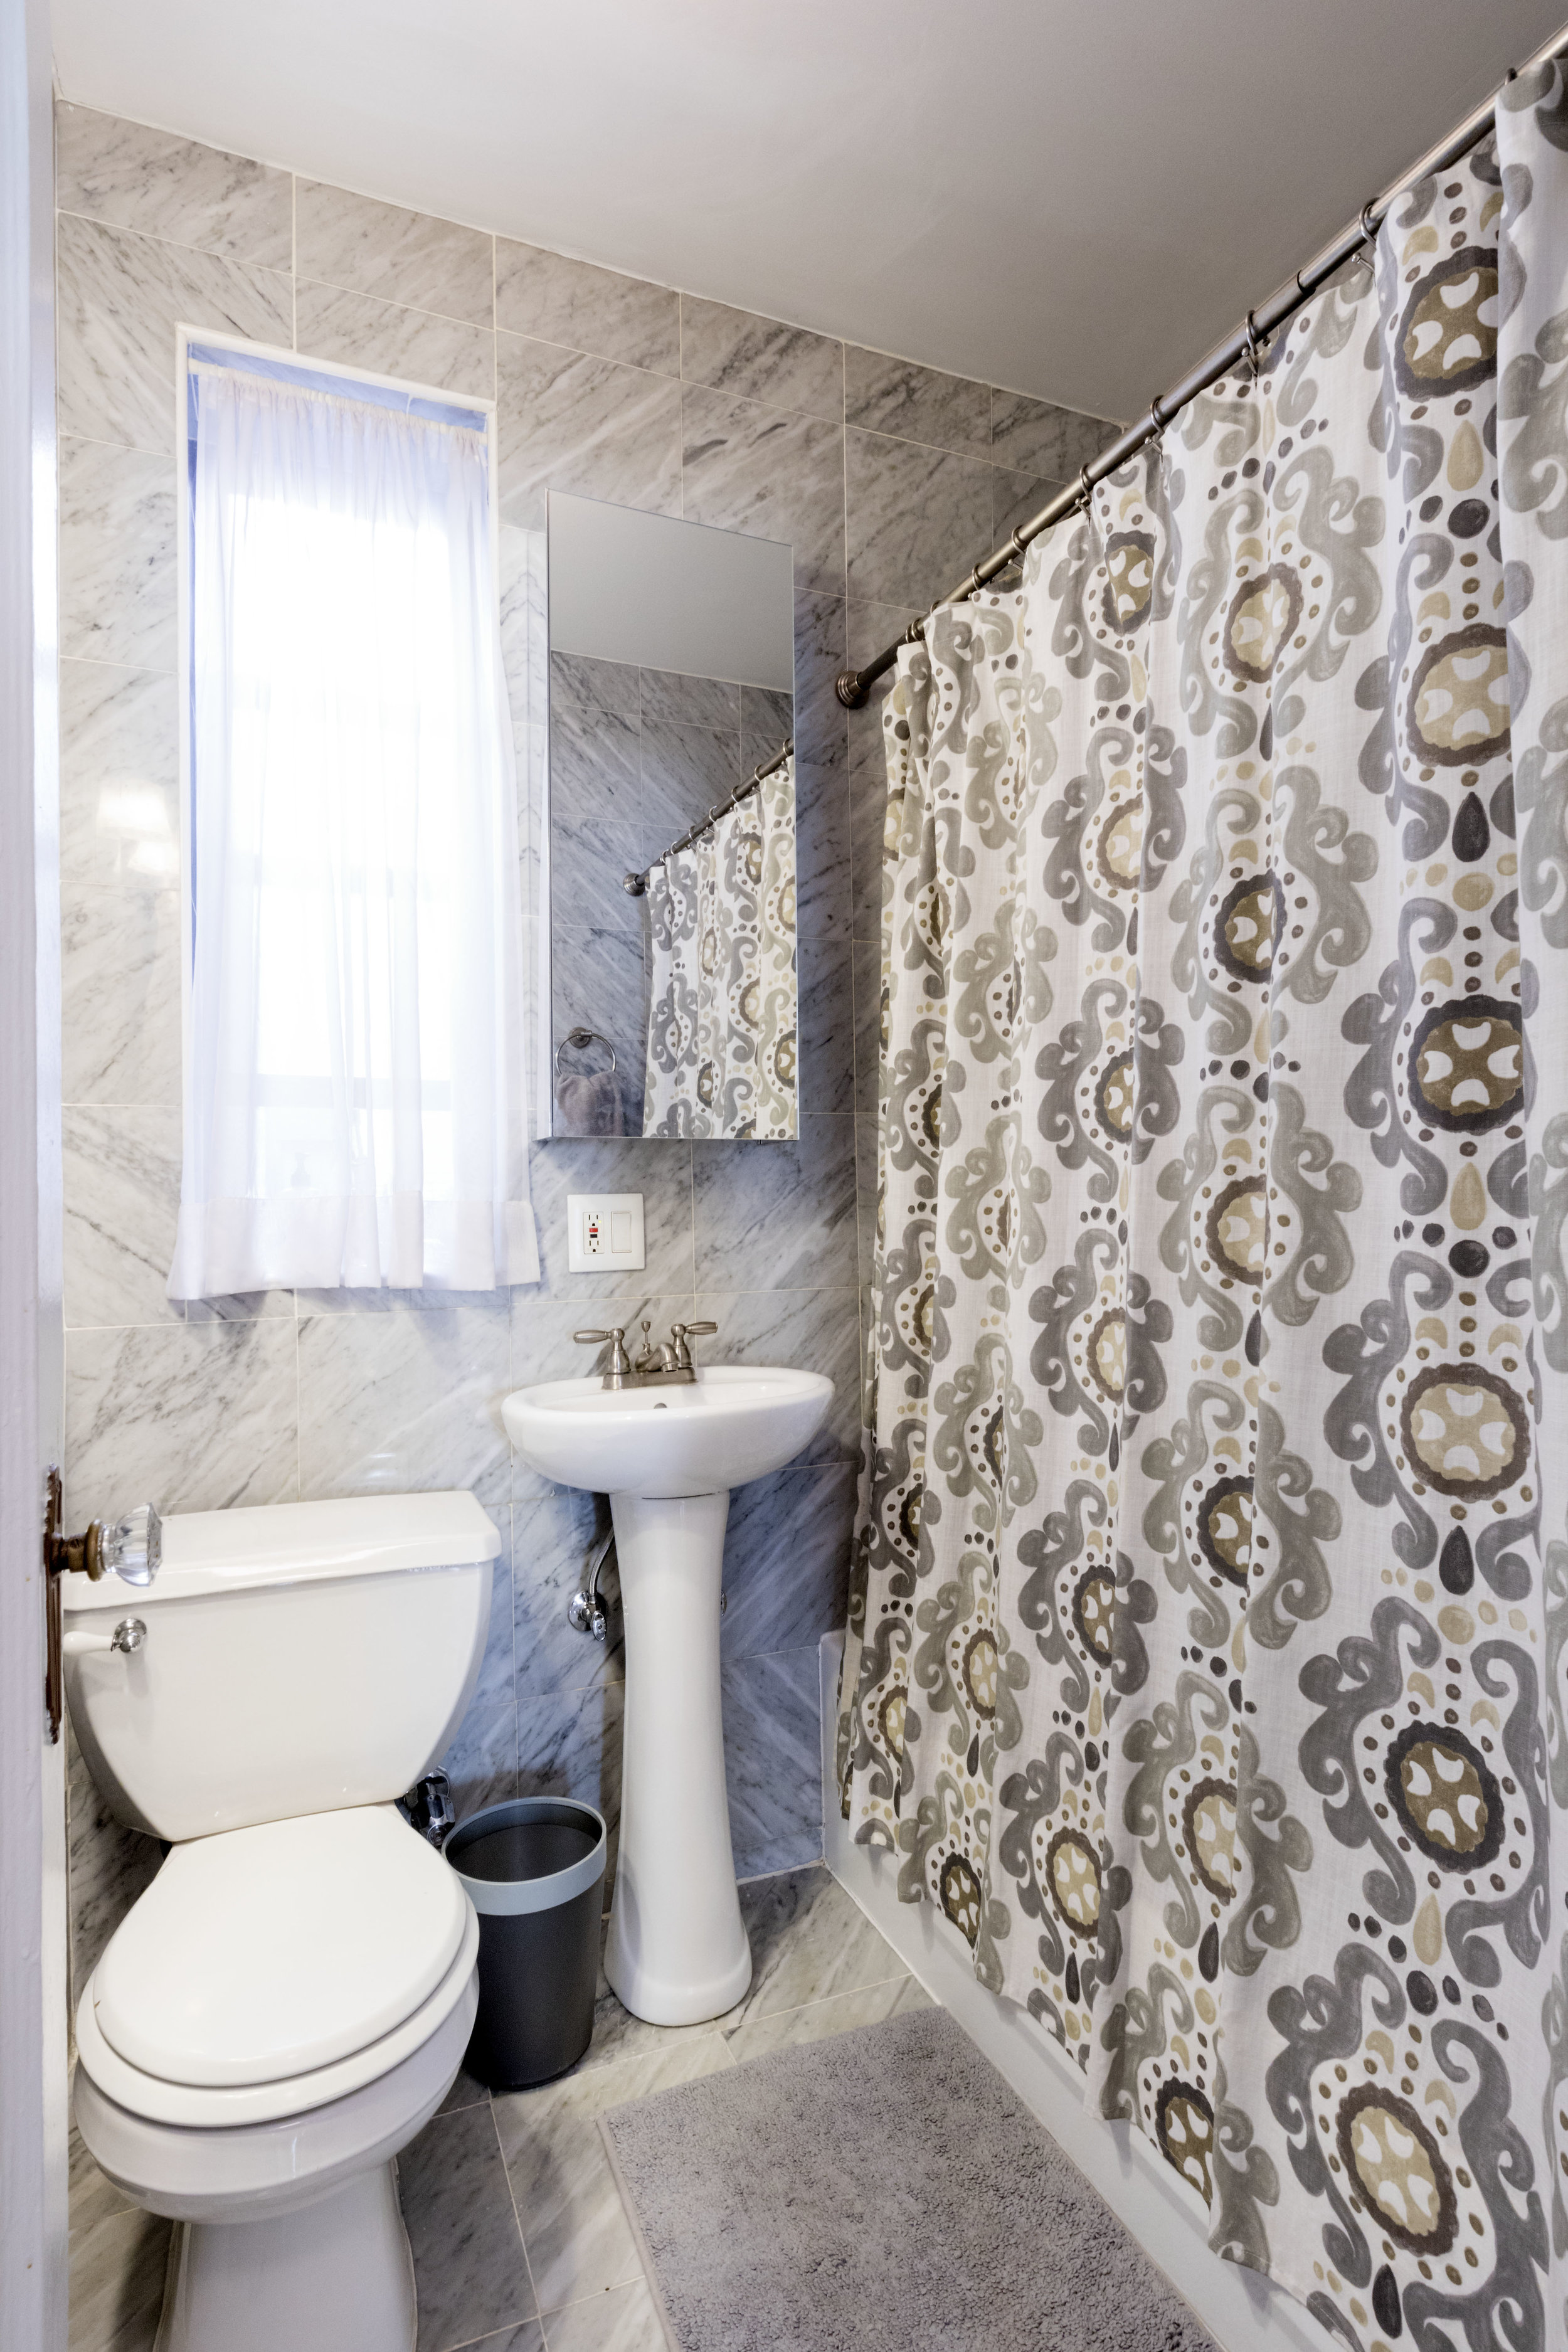 277-Washington-3-Bath.jpg